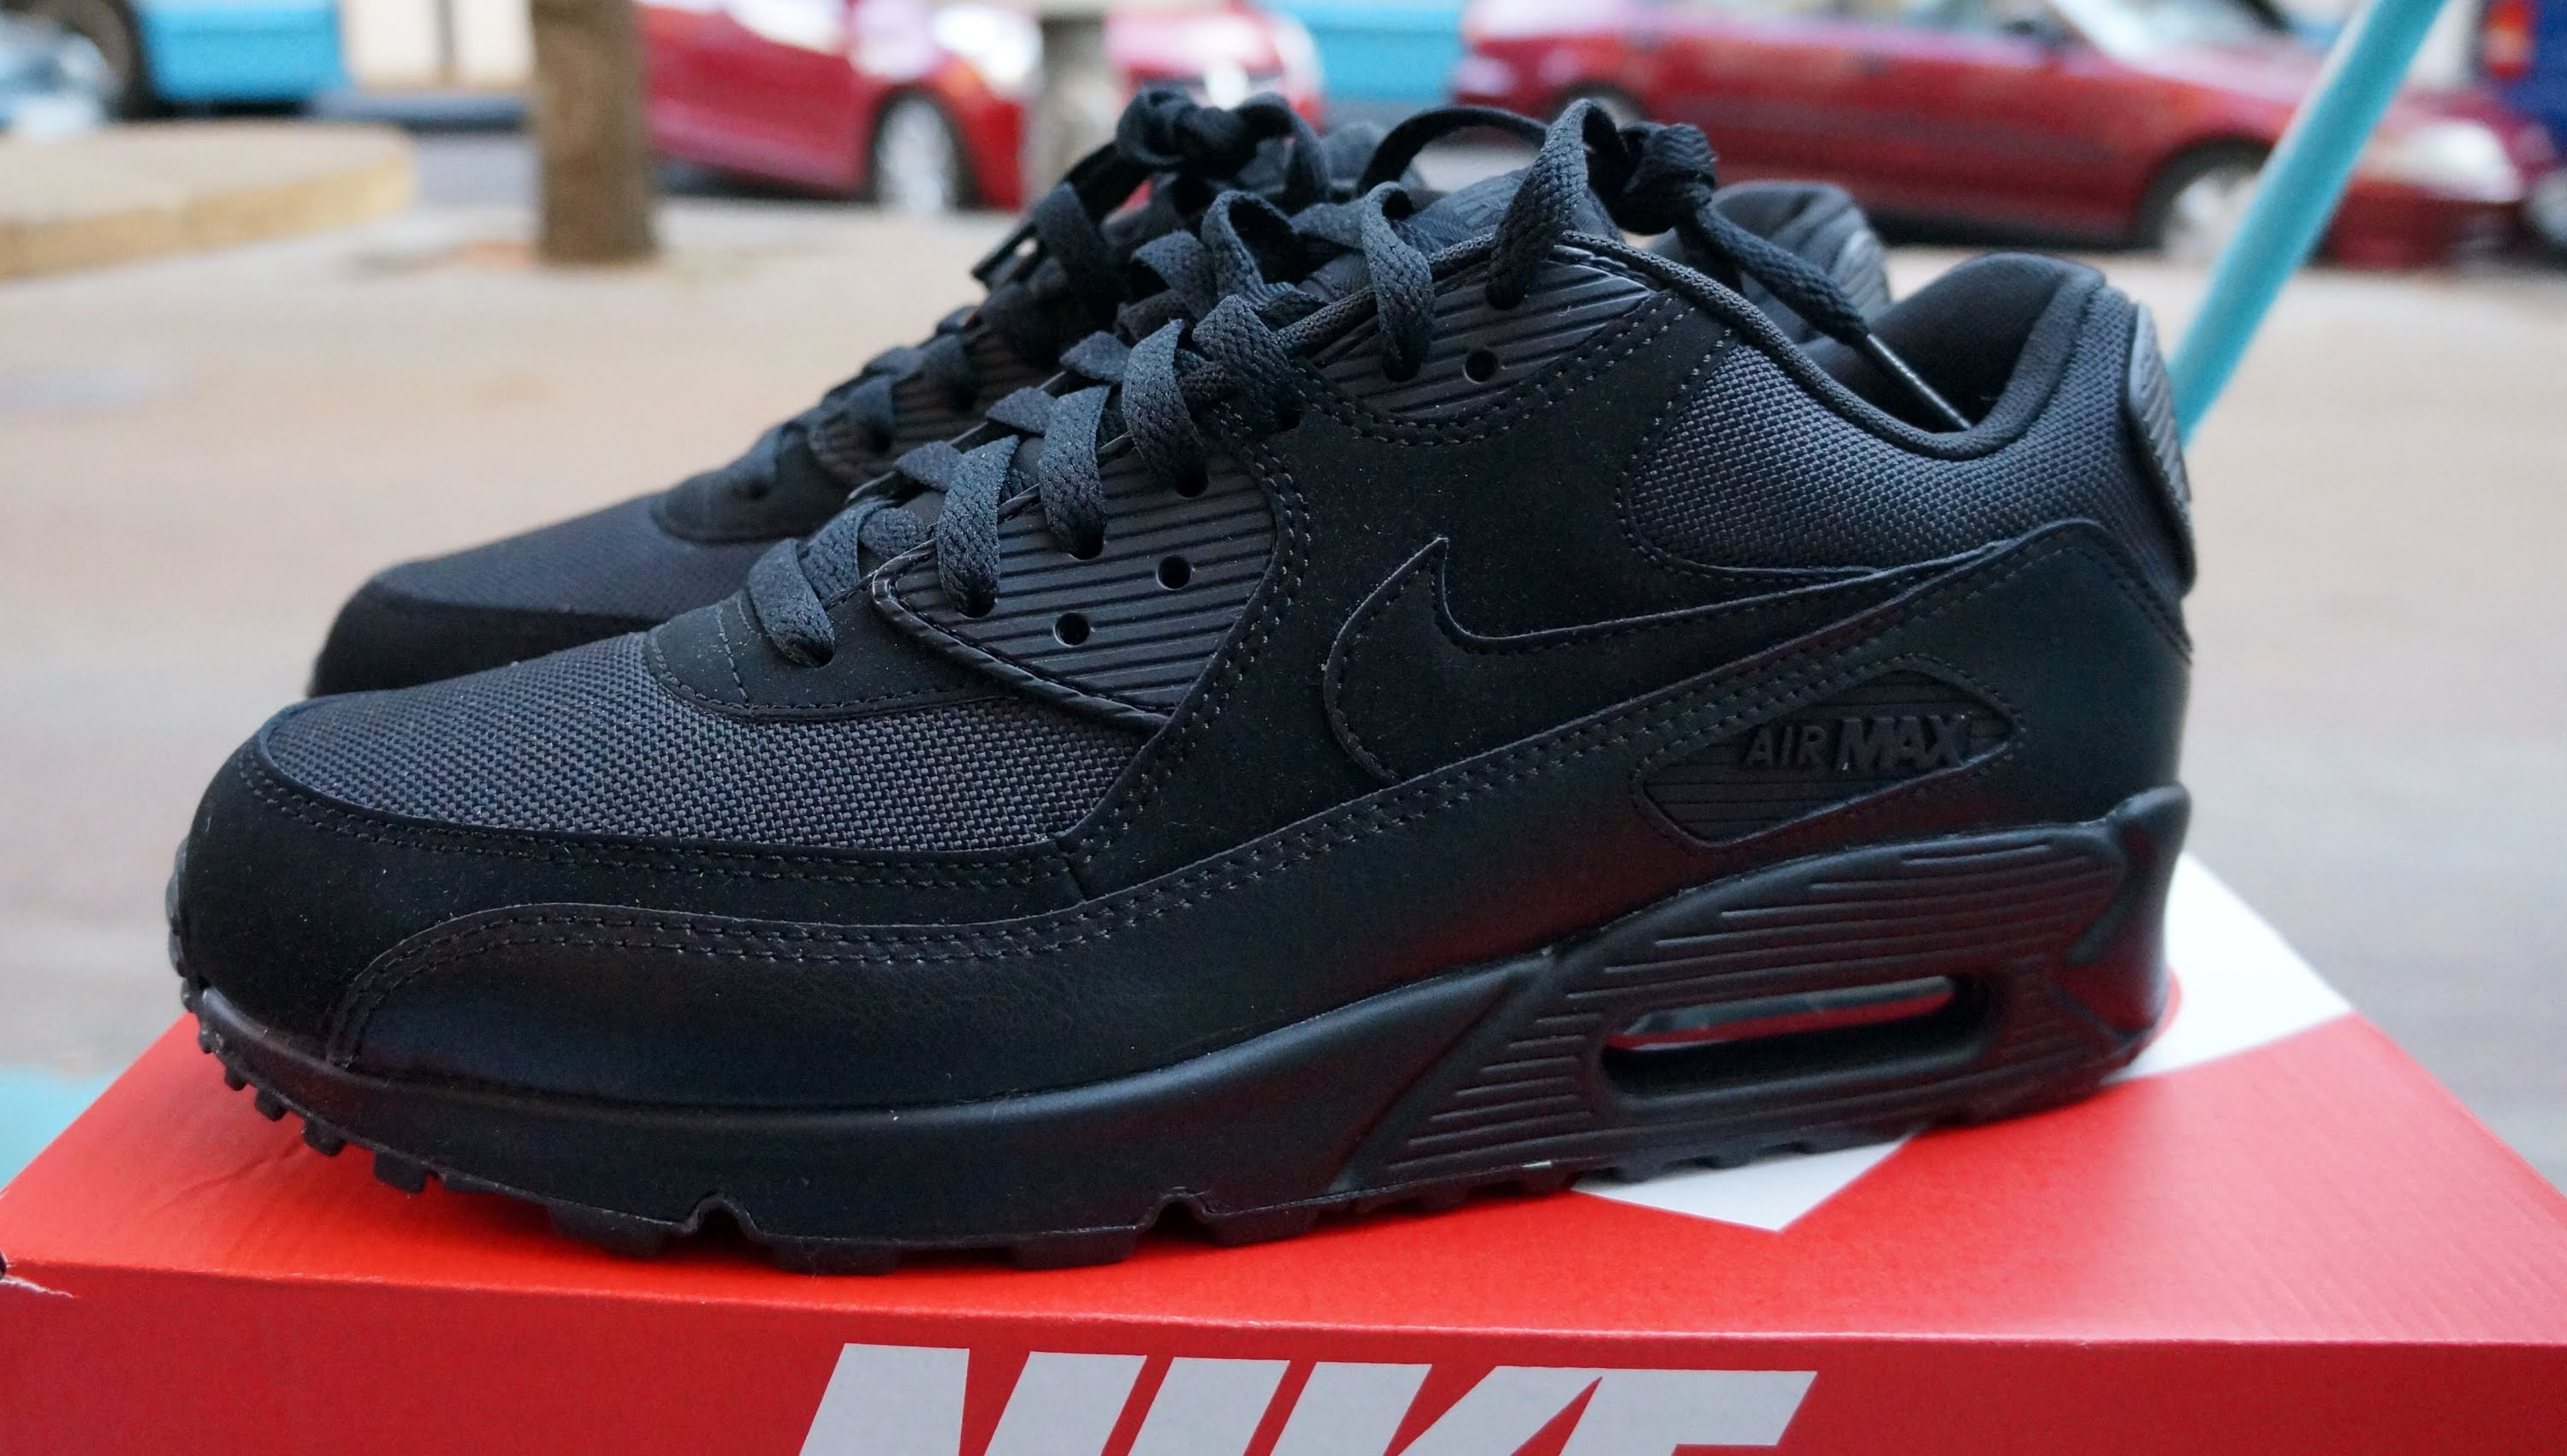 7e7cfb73b9d Nike Air Max 90 Black : Buy Nike Sneakers & Shoes | Air force 1, Air ...